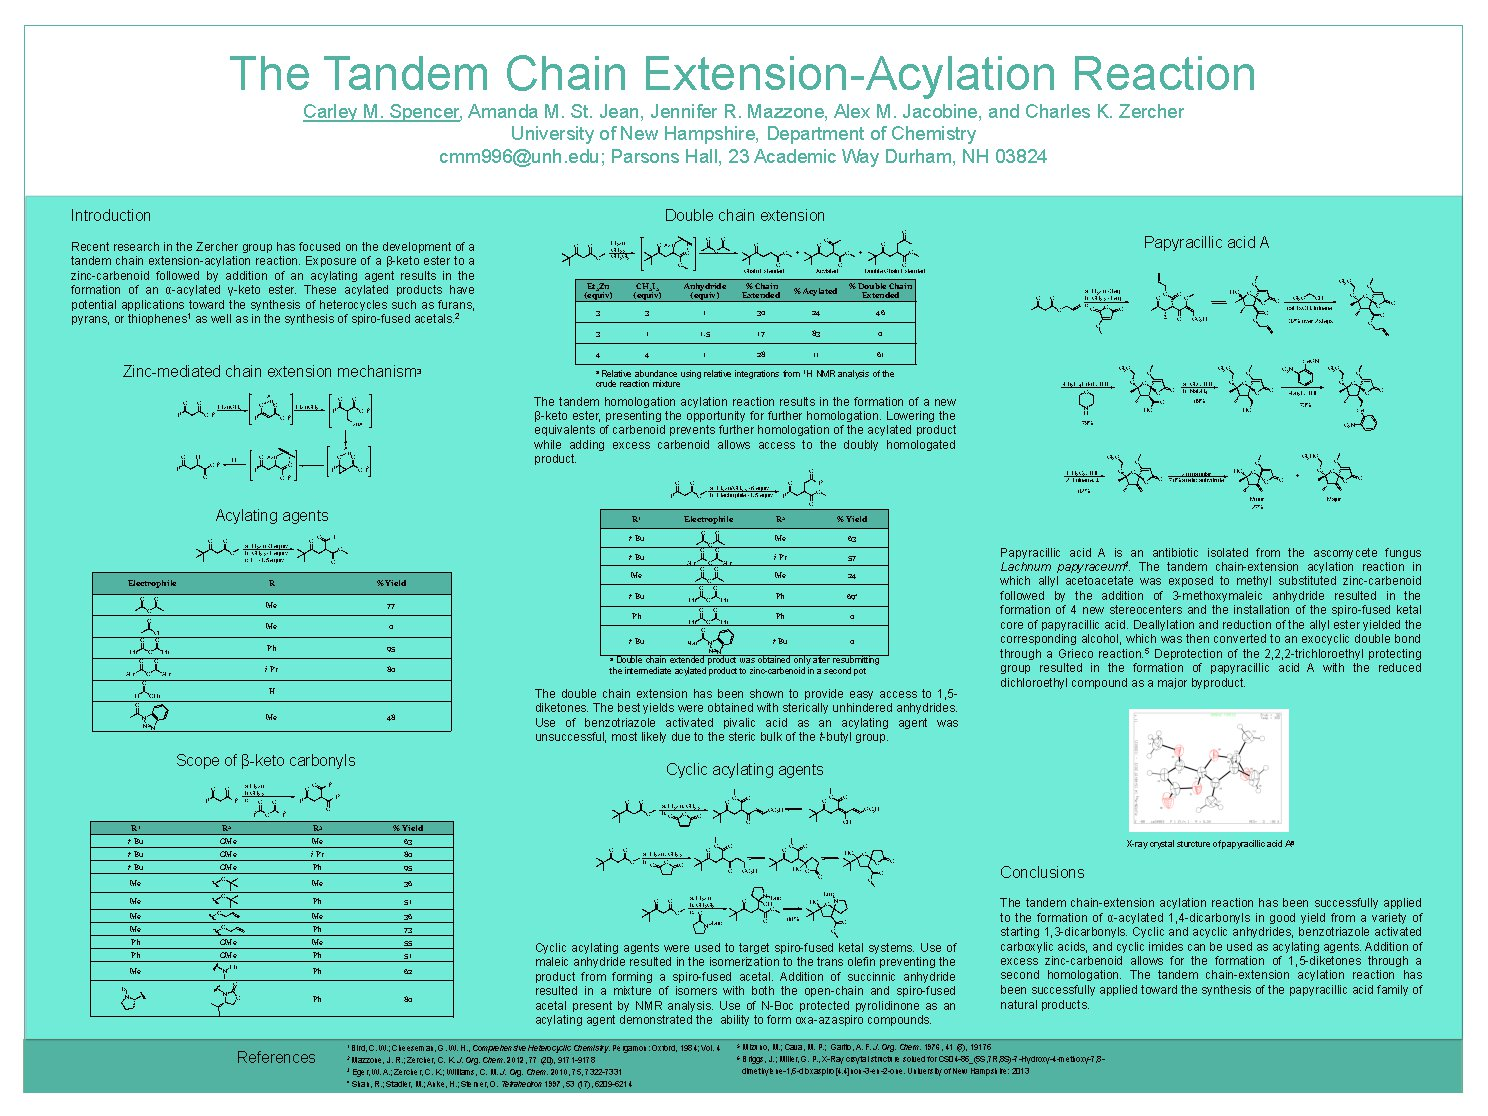 The Tandem Chain Extension Acylation Reaction by cmm996